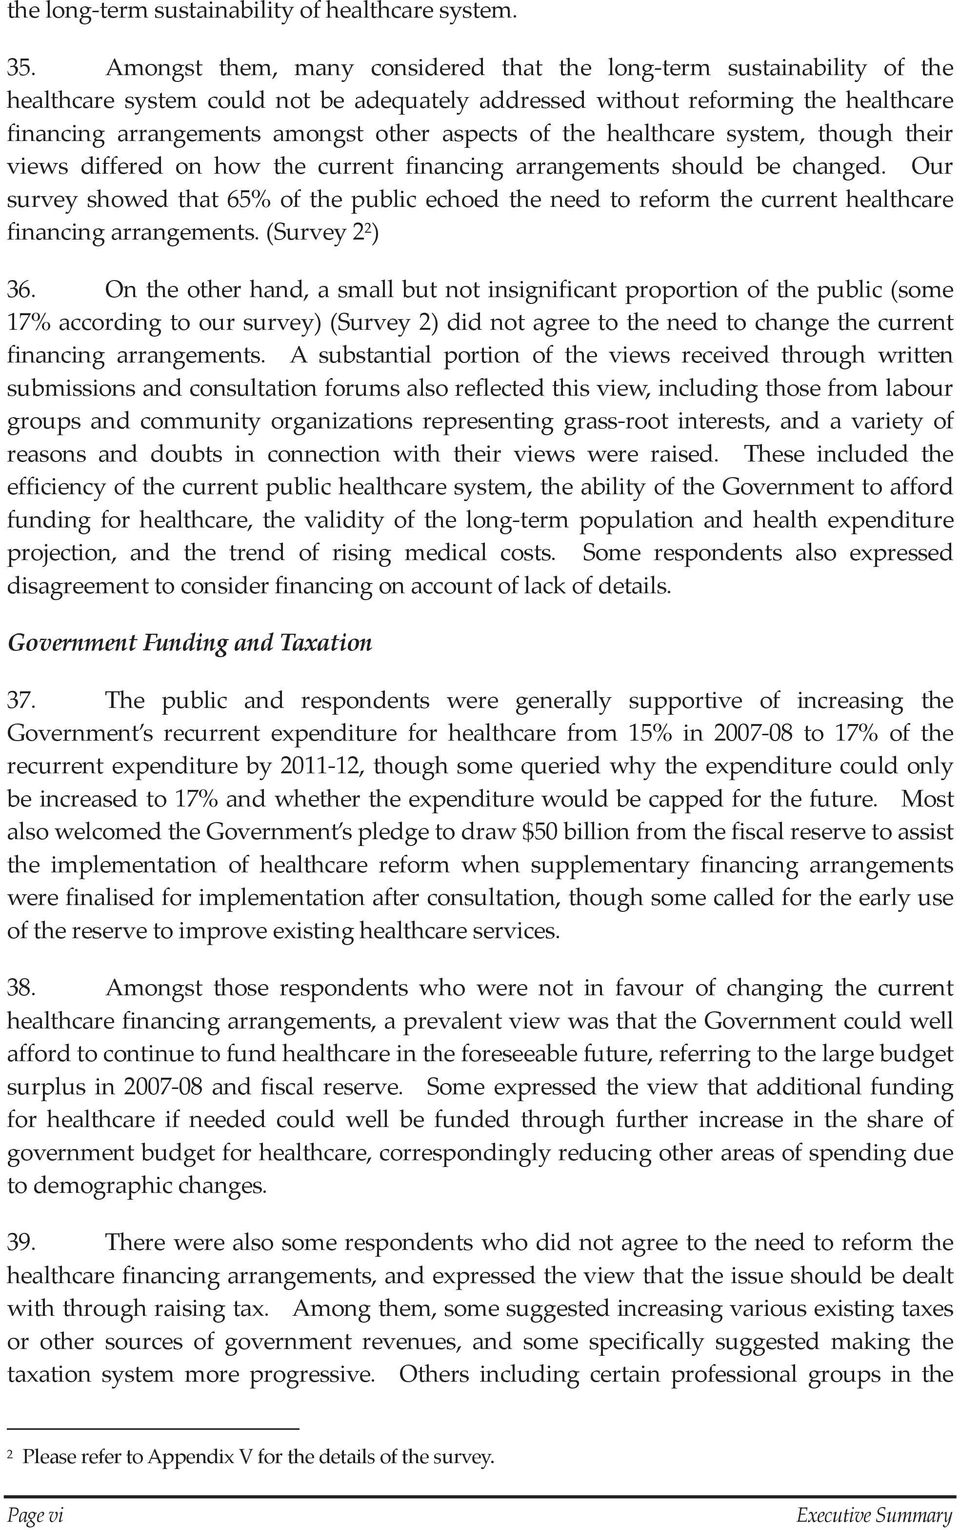 aspects of the healthcare system, though their views differed on how the current financing arrangements should be changed.